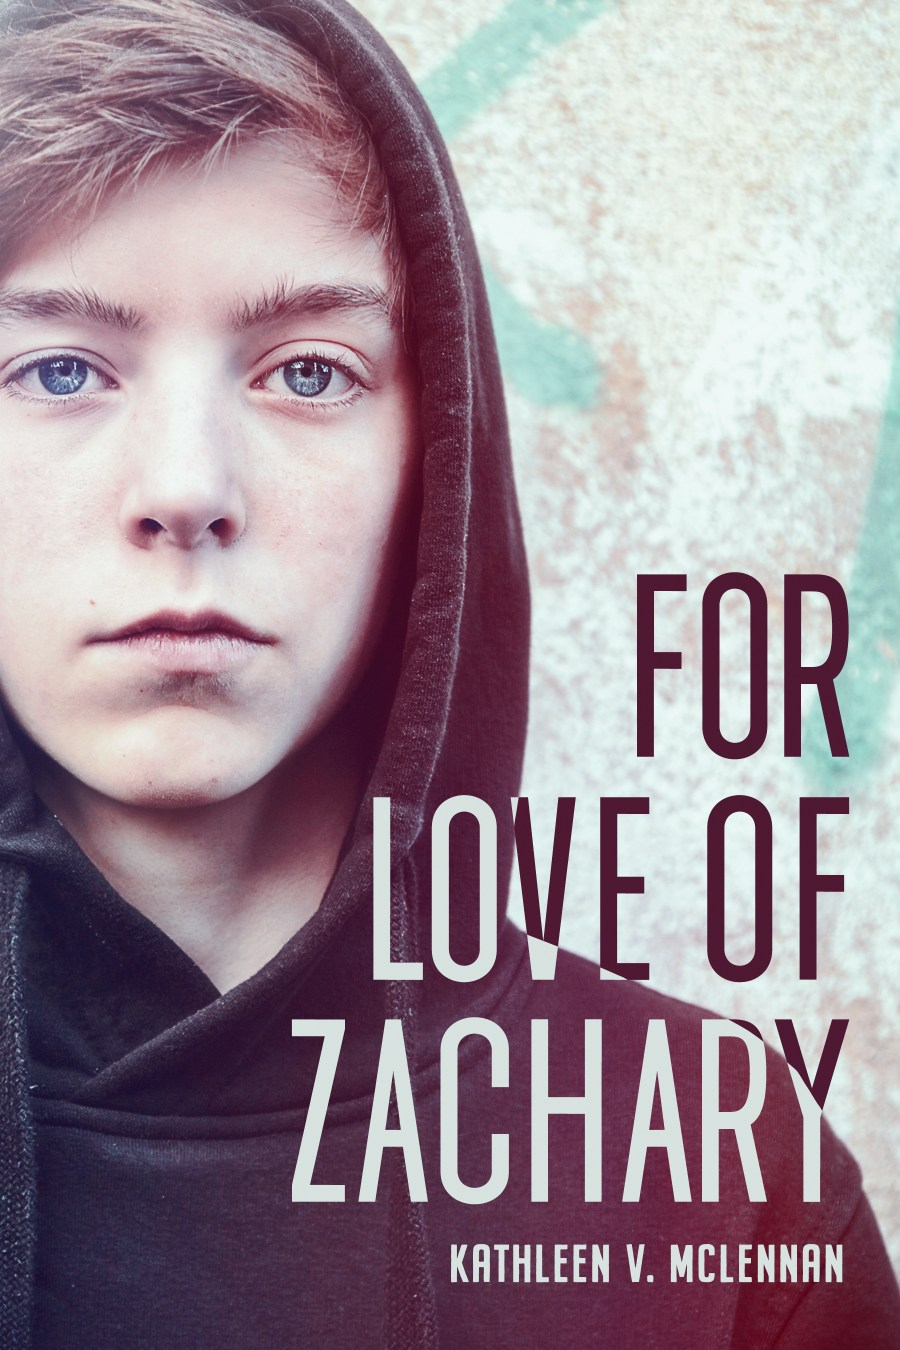 For Love of Zachary